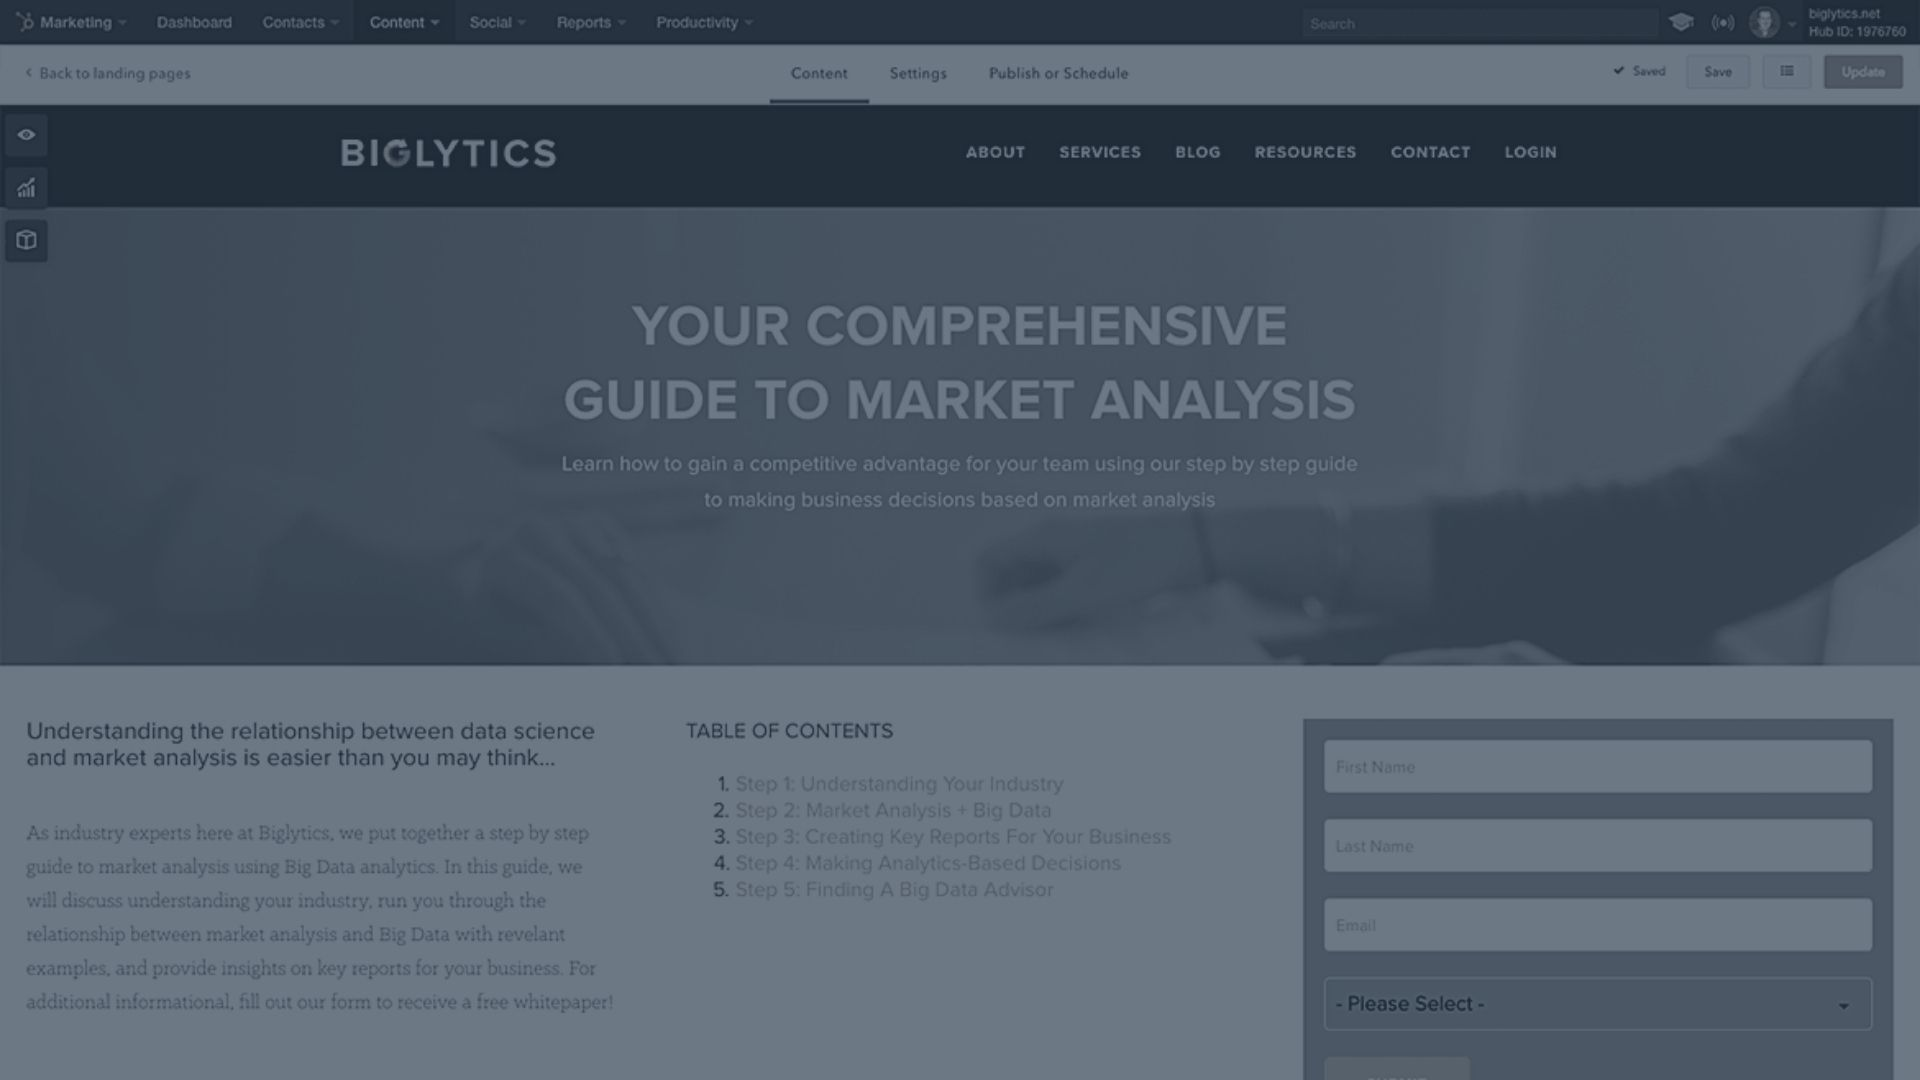 Lead Generation Services Landing Page - The Gist - Buffalo NY Marketing Agency